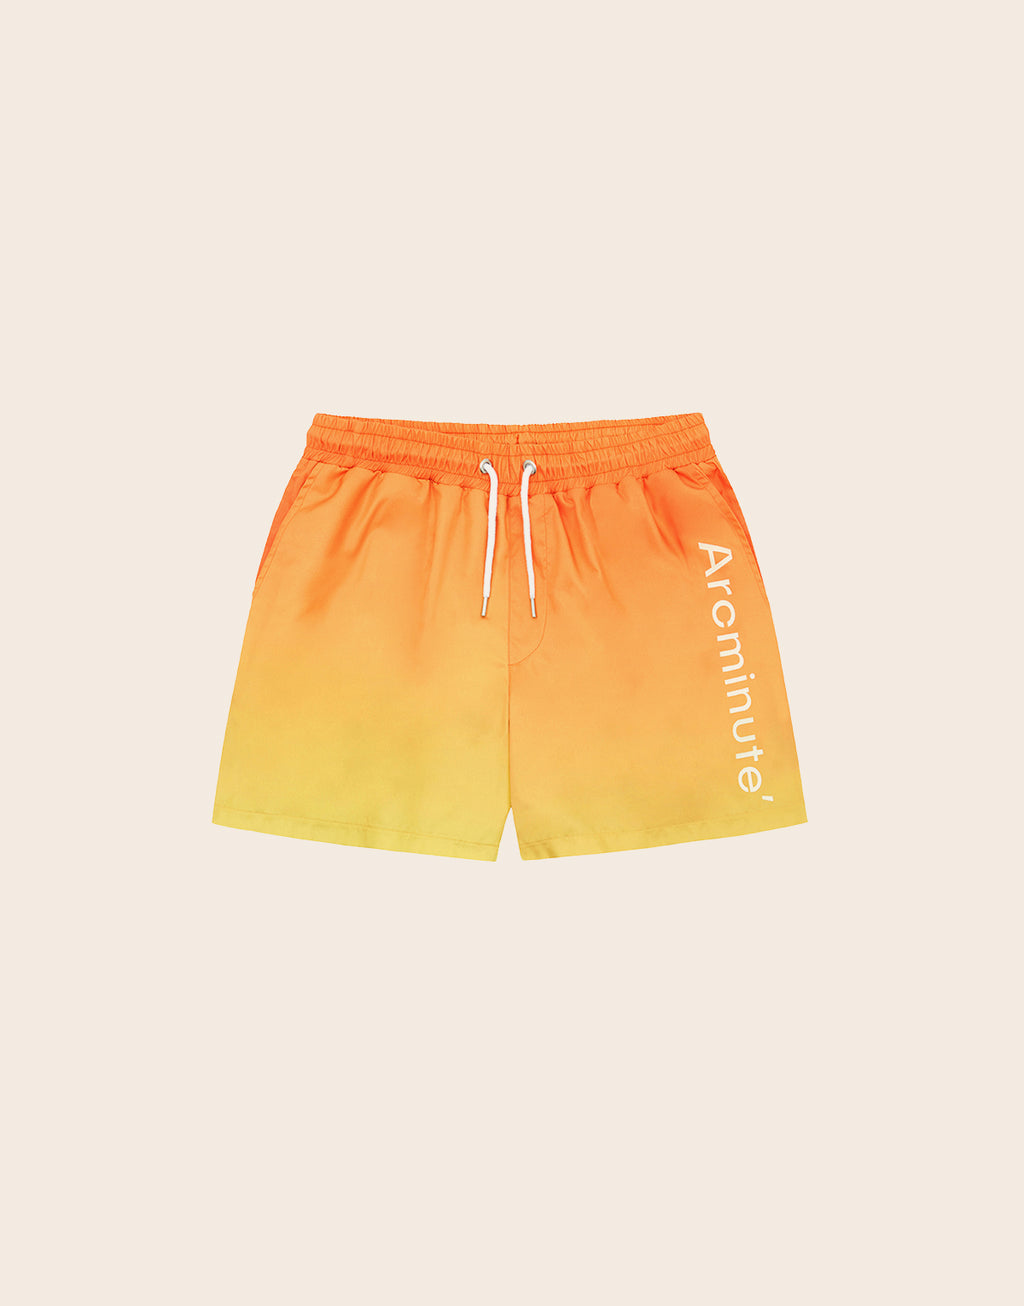 Emmy Shorts Orange - Arcminute